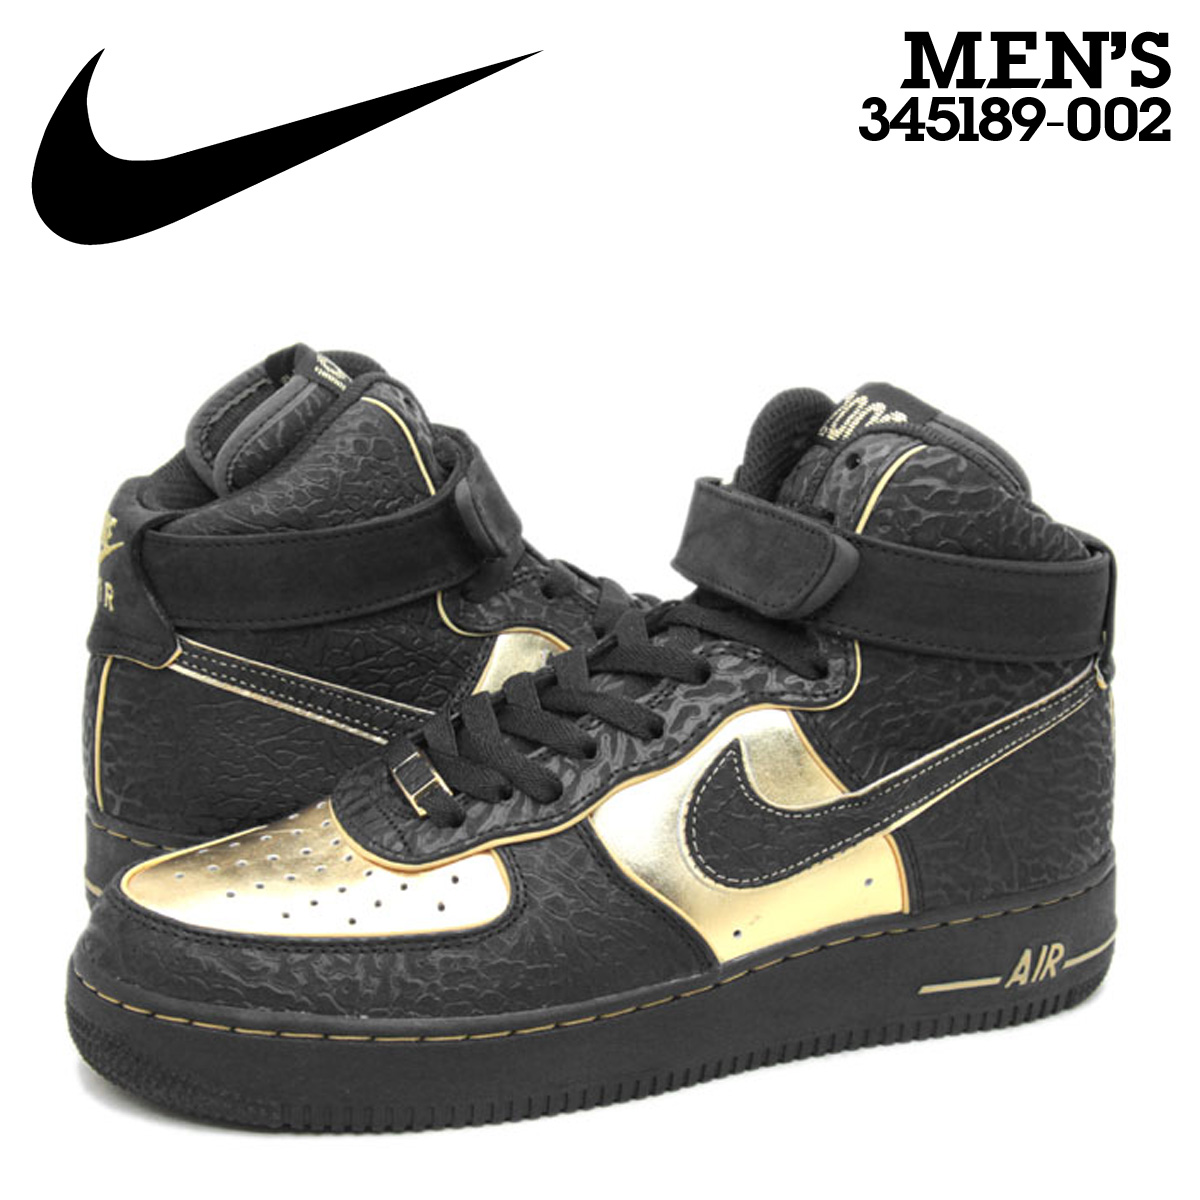 NIKE Nike air force sneakers AIR FORCE 1 HI NITRO MICROPHONE UNDERGROUND air force 1 high nitro microphone collaboration limited 345,189 002 black